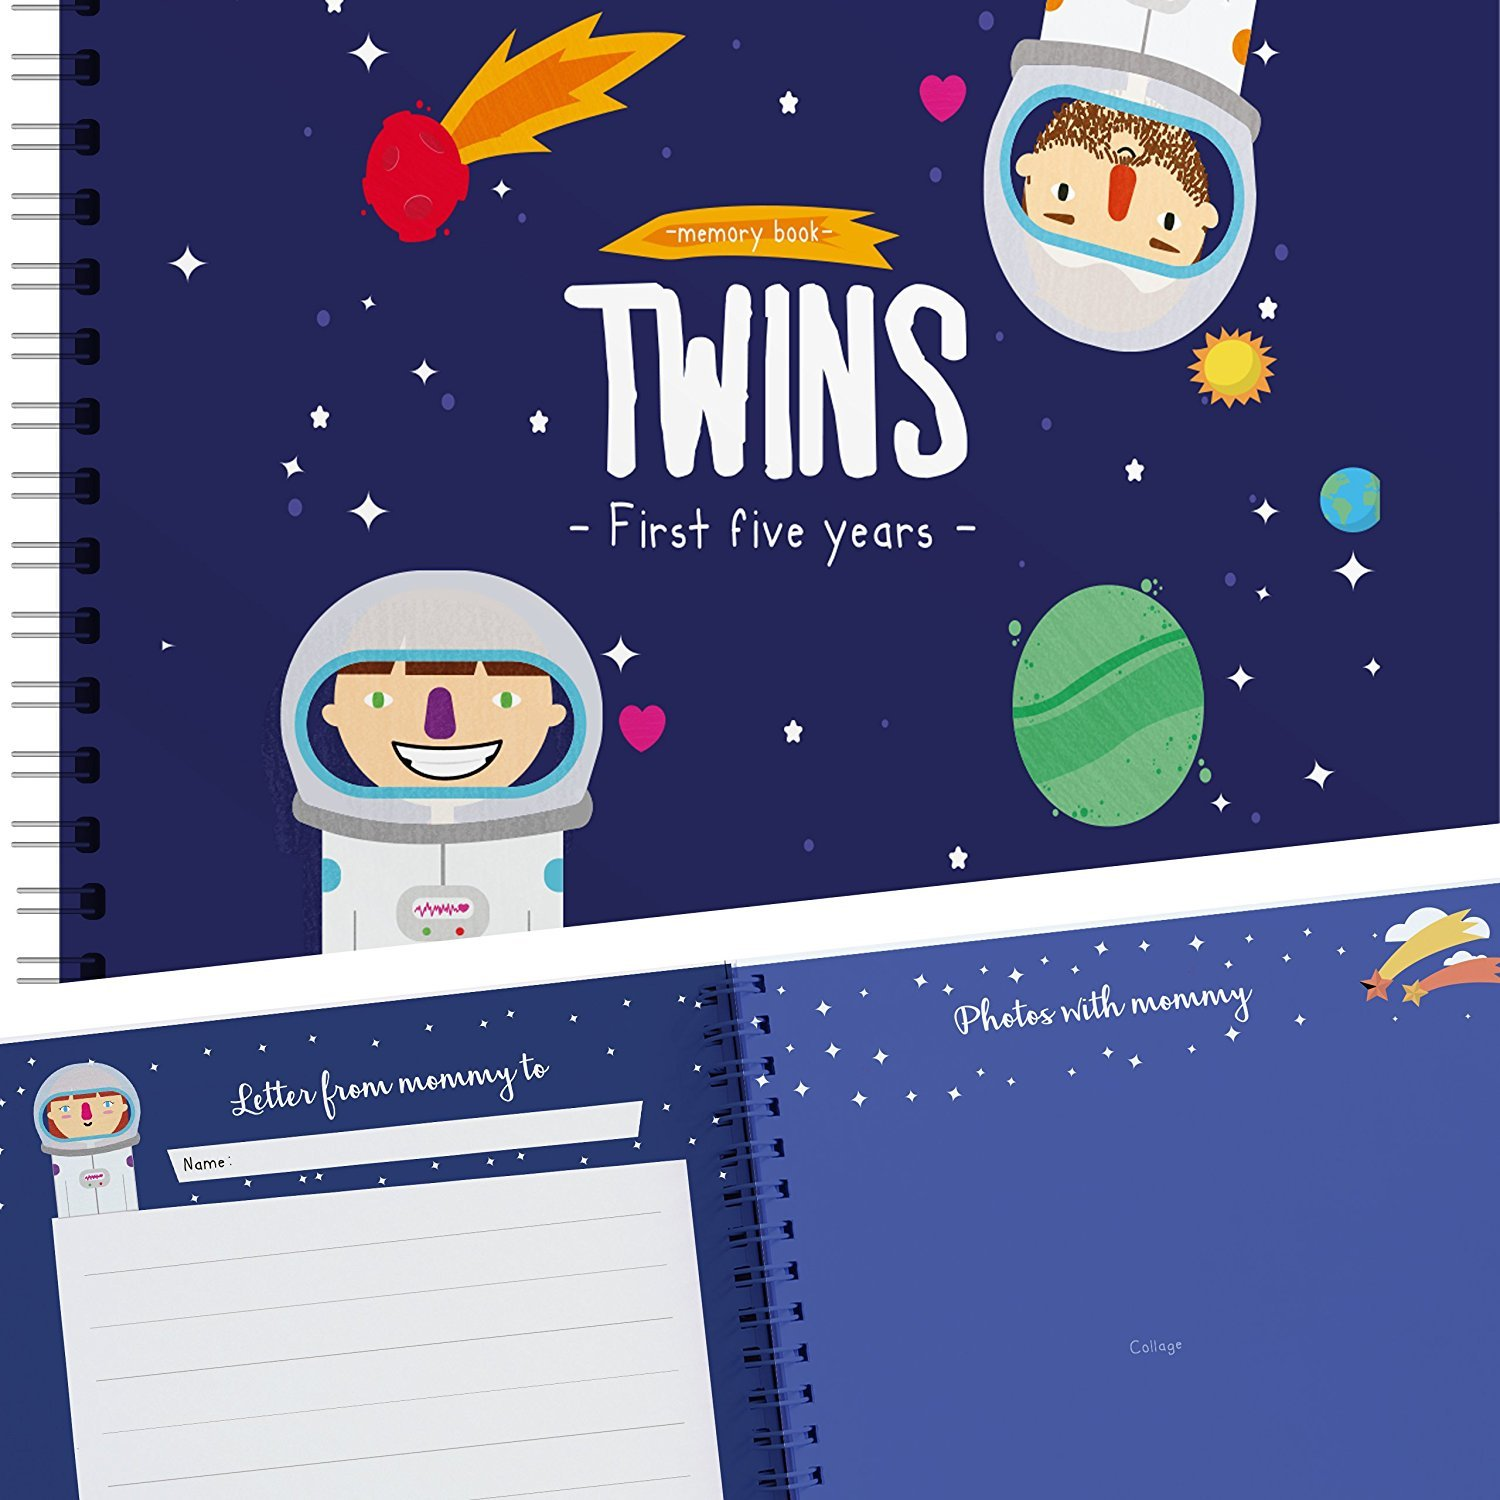 Astronaut Edition - Twins First Five Years Memory Book with Stickers - Baby Keepsake Journal to Cherish Your Twin's First Five Years - Includes Dental Records, First Day of School, and More Unconditional Rosie TWINSSPACEJUNTO